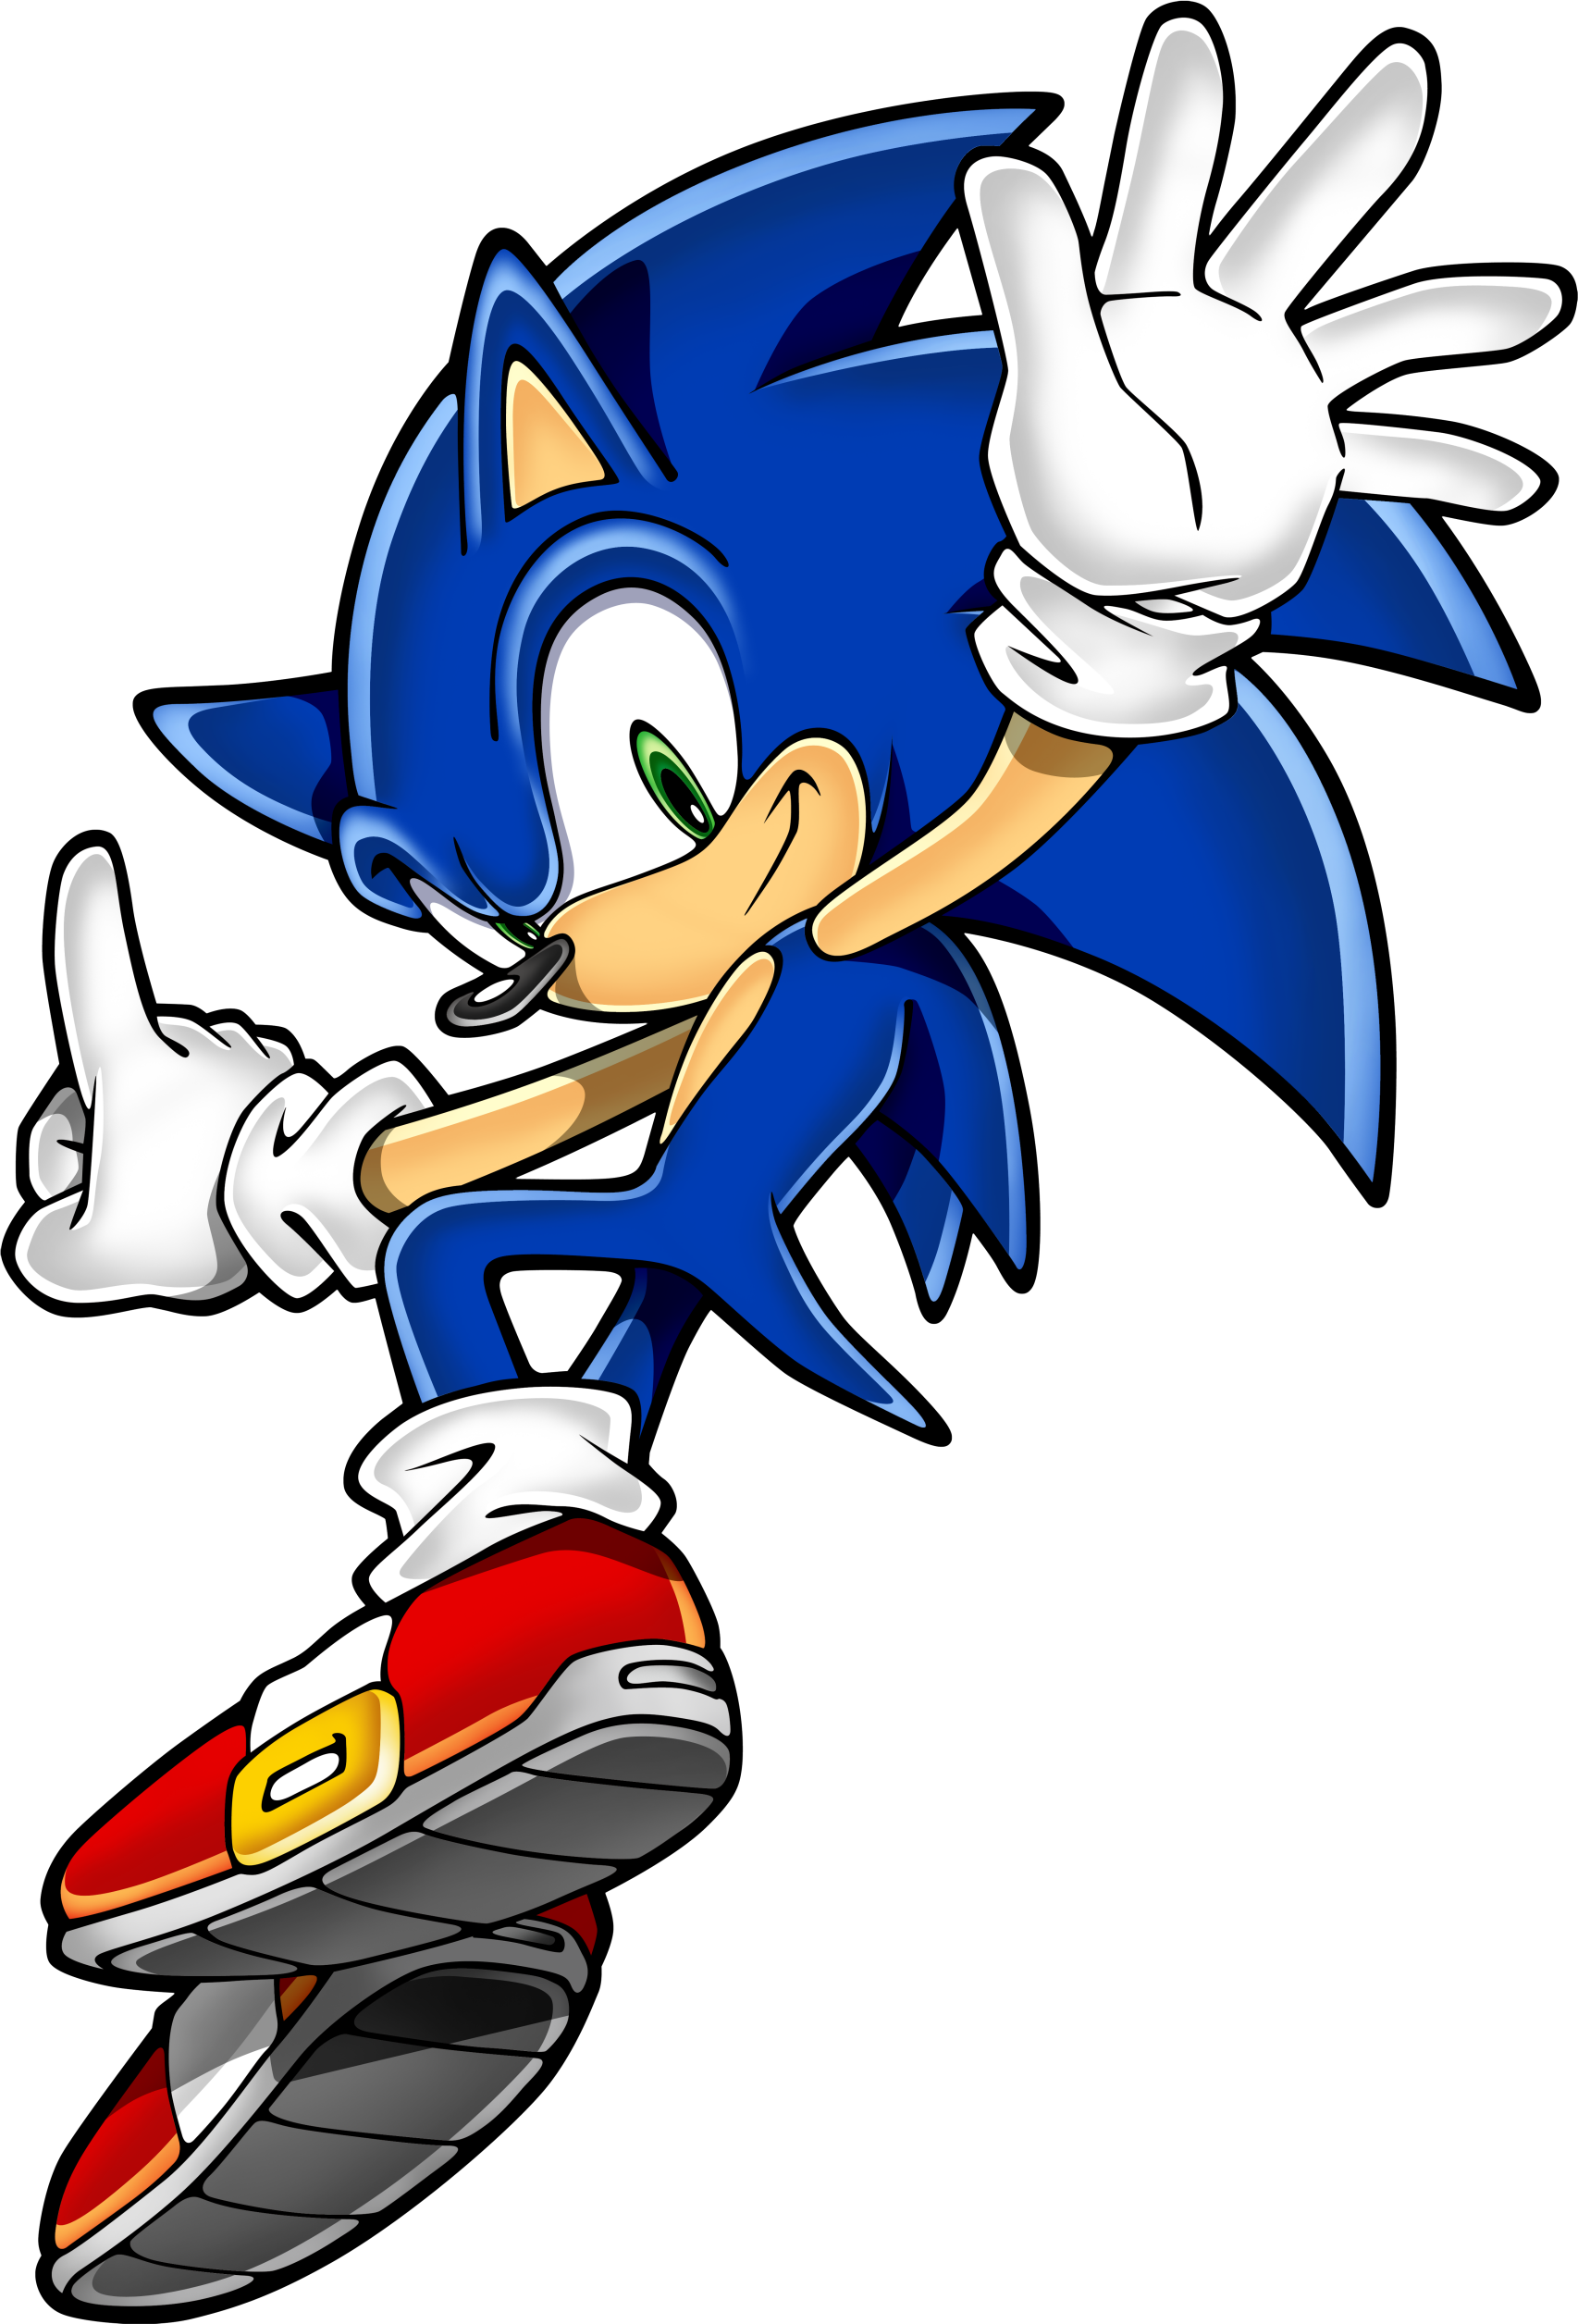 Sonic The Hedgehog svg #8, Download drawings